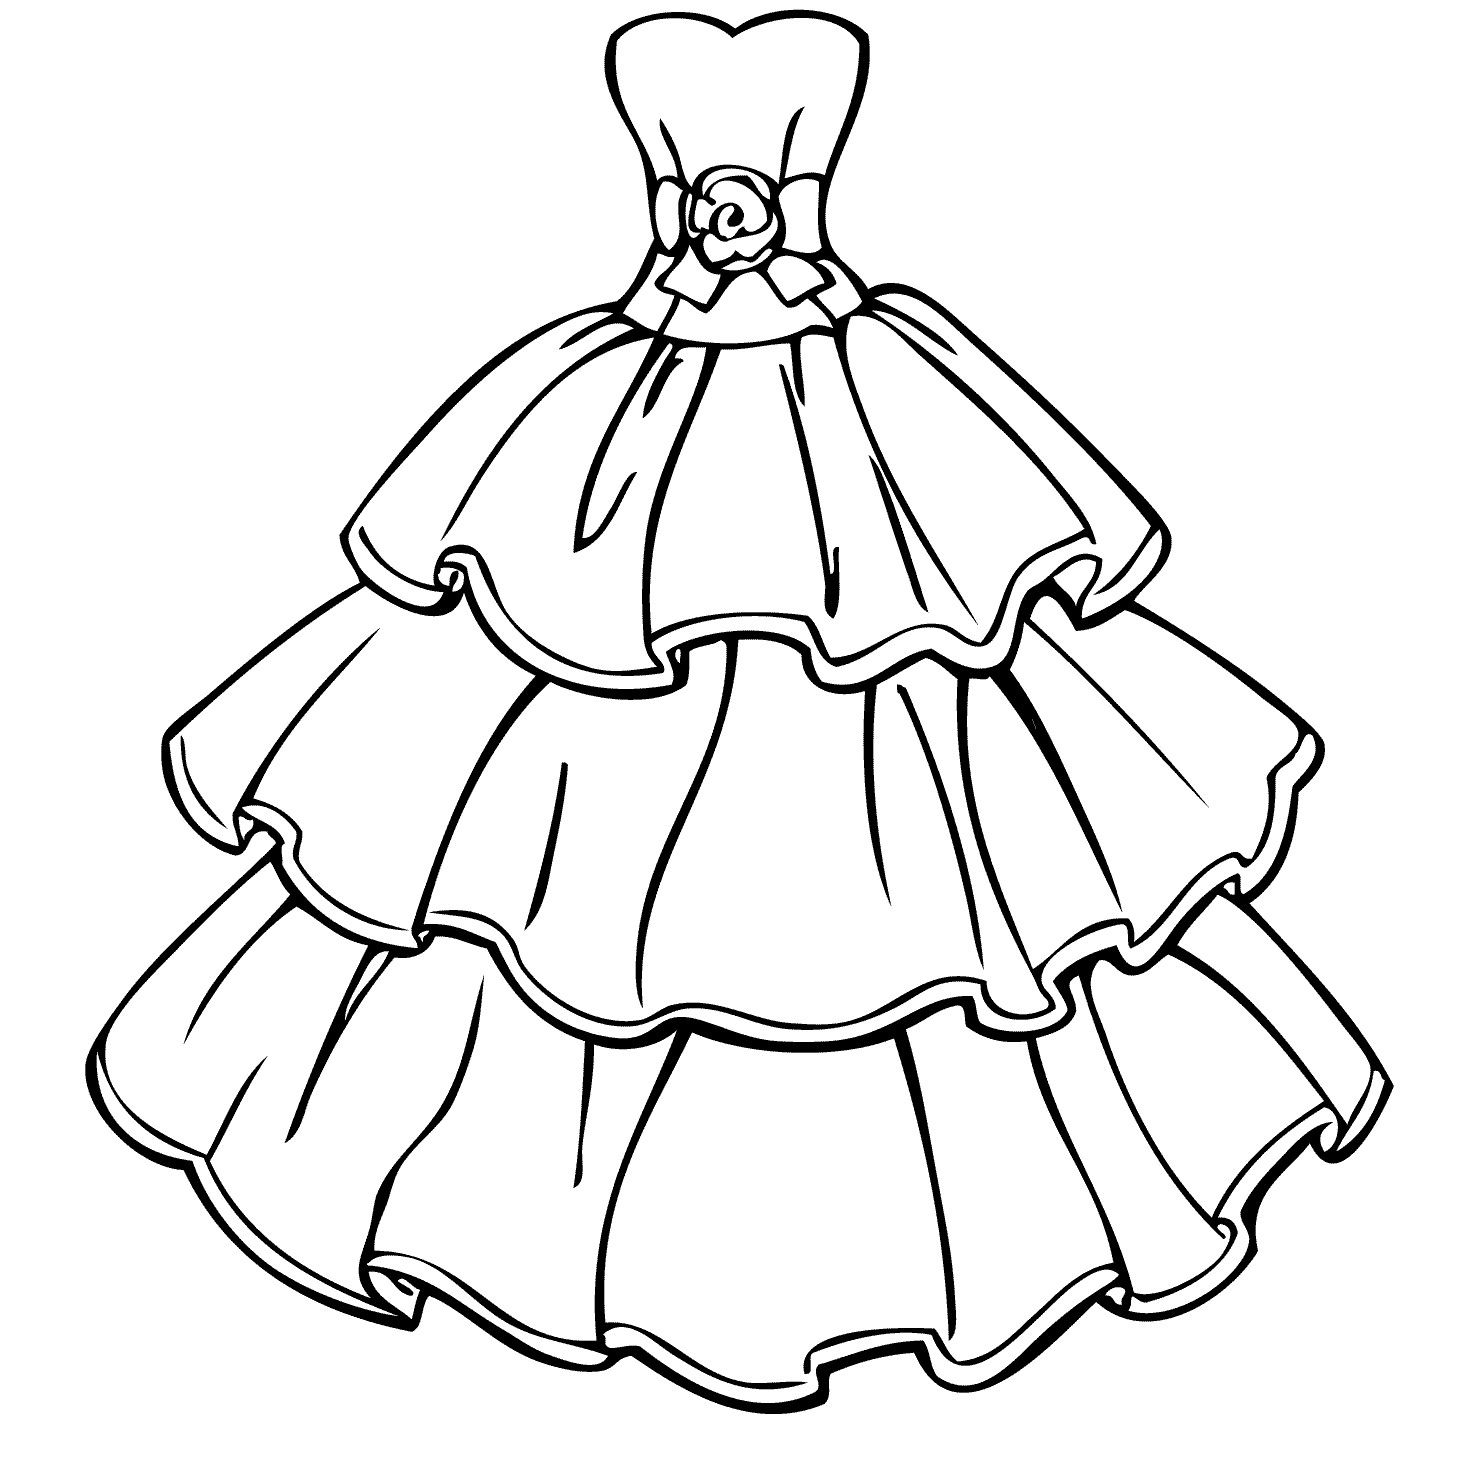 Wedding Dress Coloring Sheets on 36 wide paper